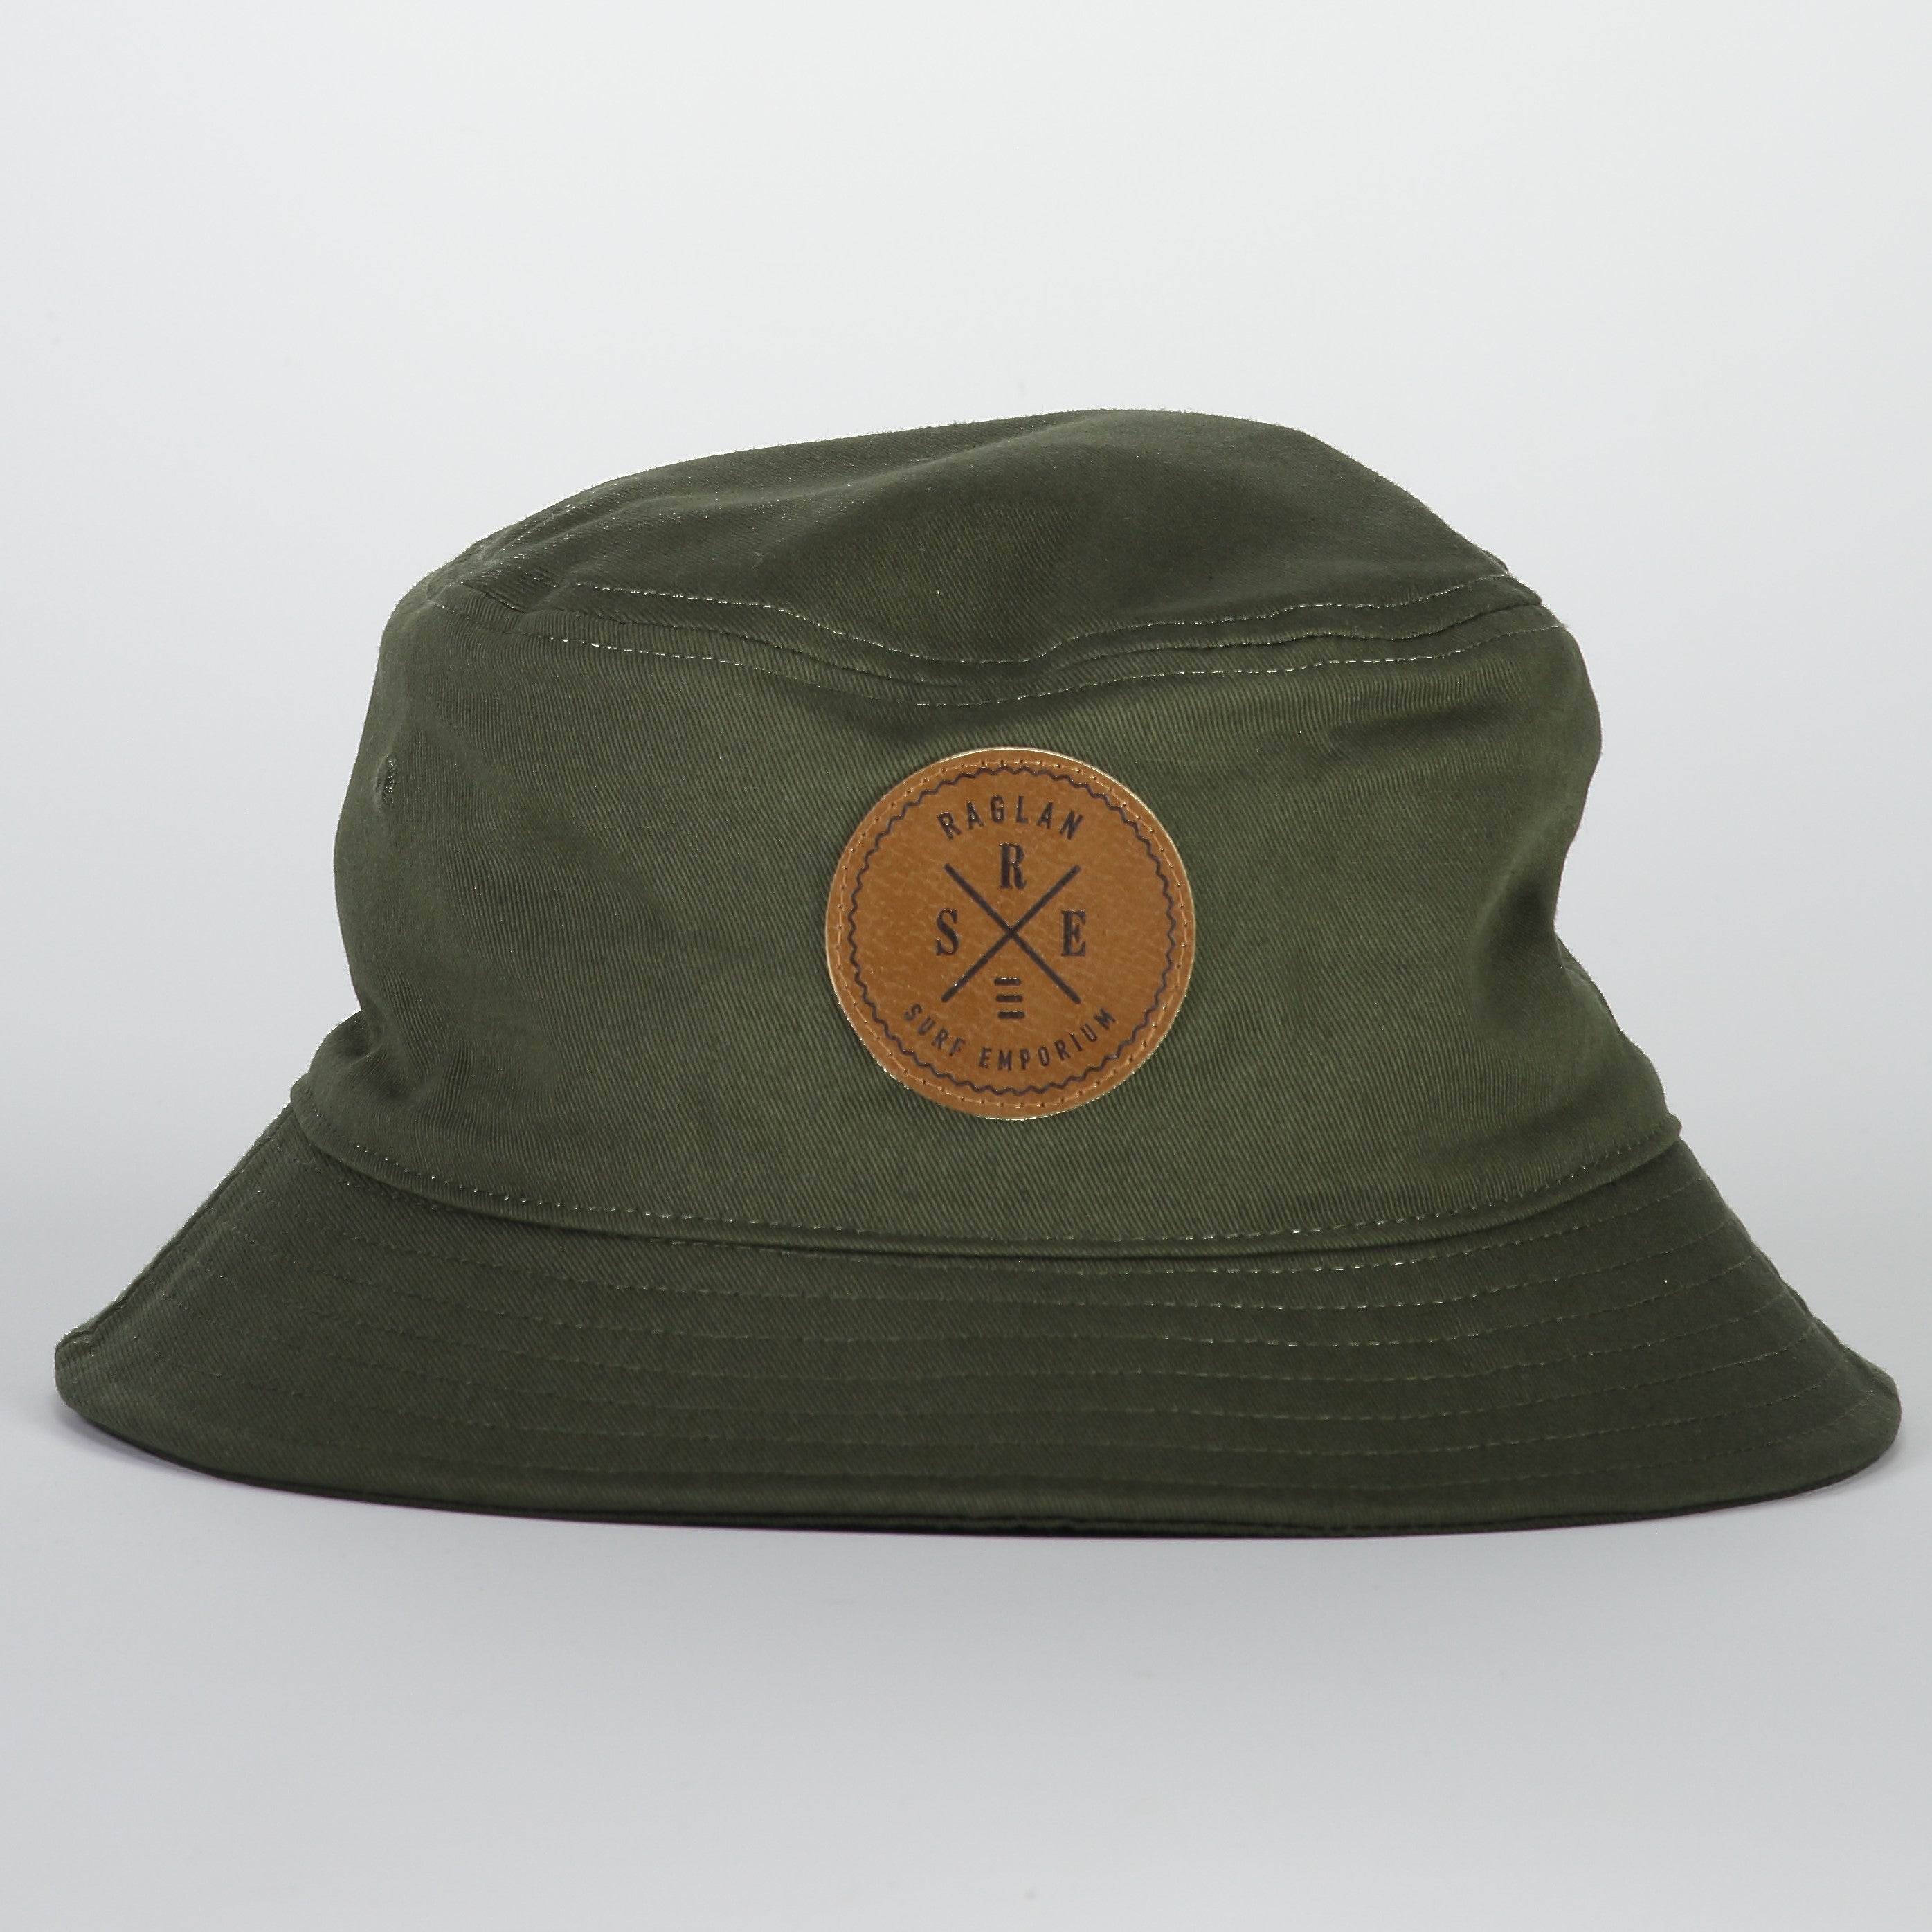 RSE X Bucket Hat - Olive